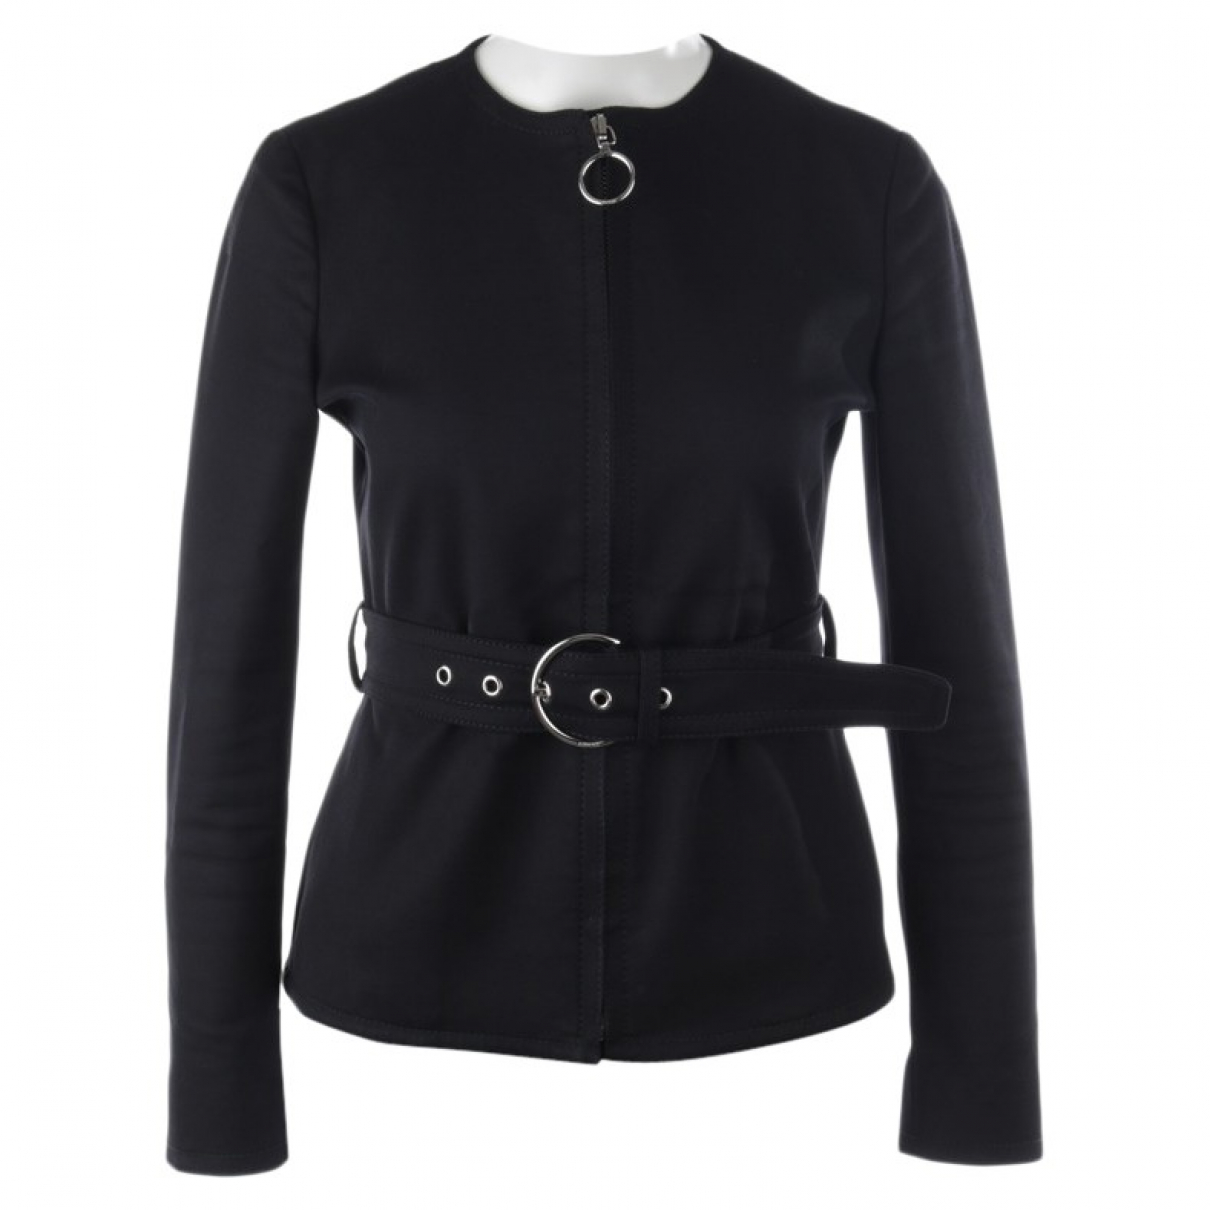 Gucci \N Black Cotton jacket for Women 36 FR